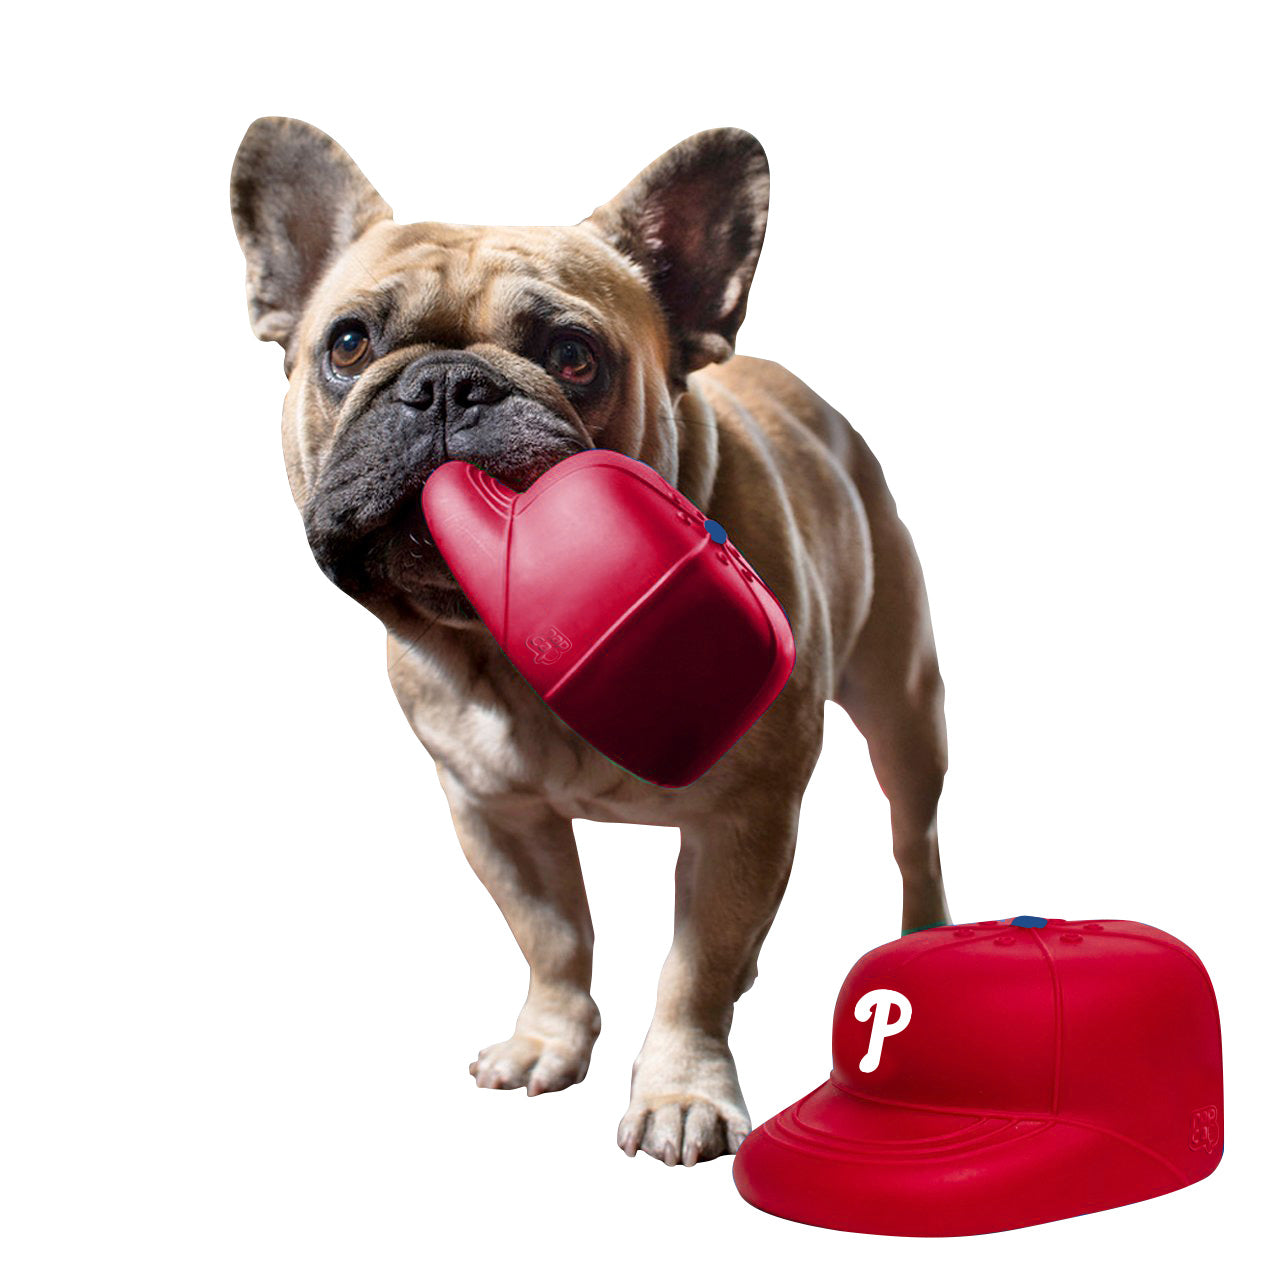 Philadelphia Phillies PlayCap Dog Chew Toy